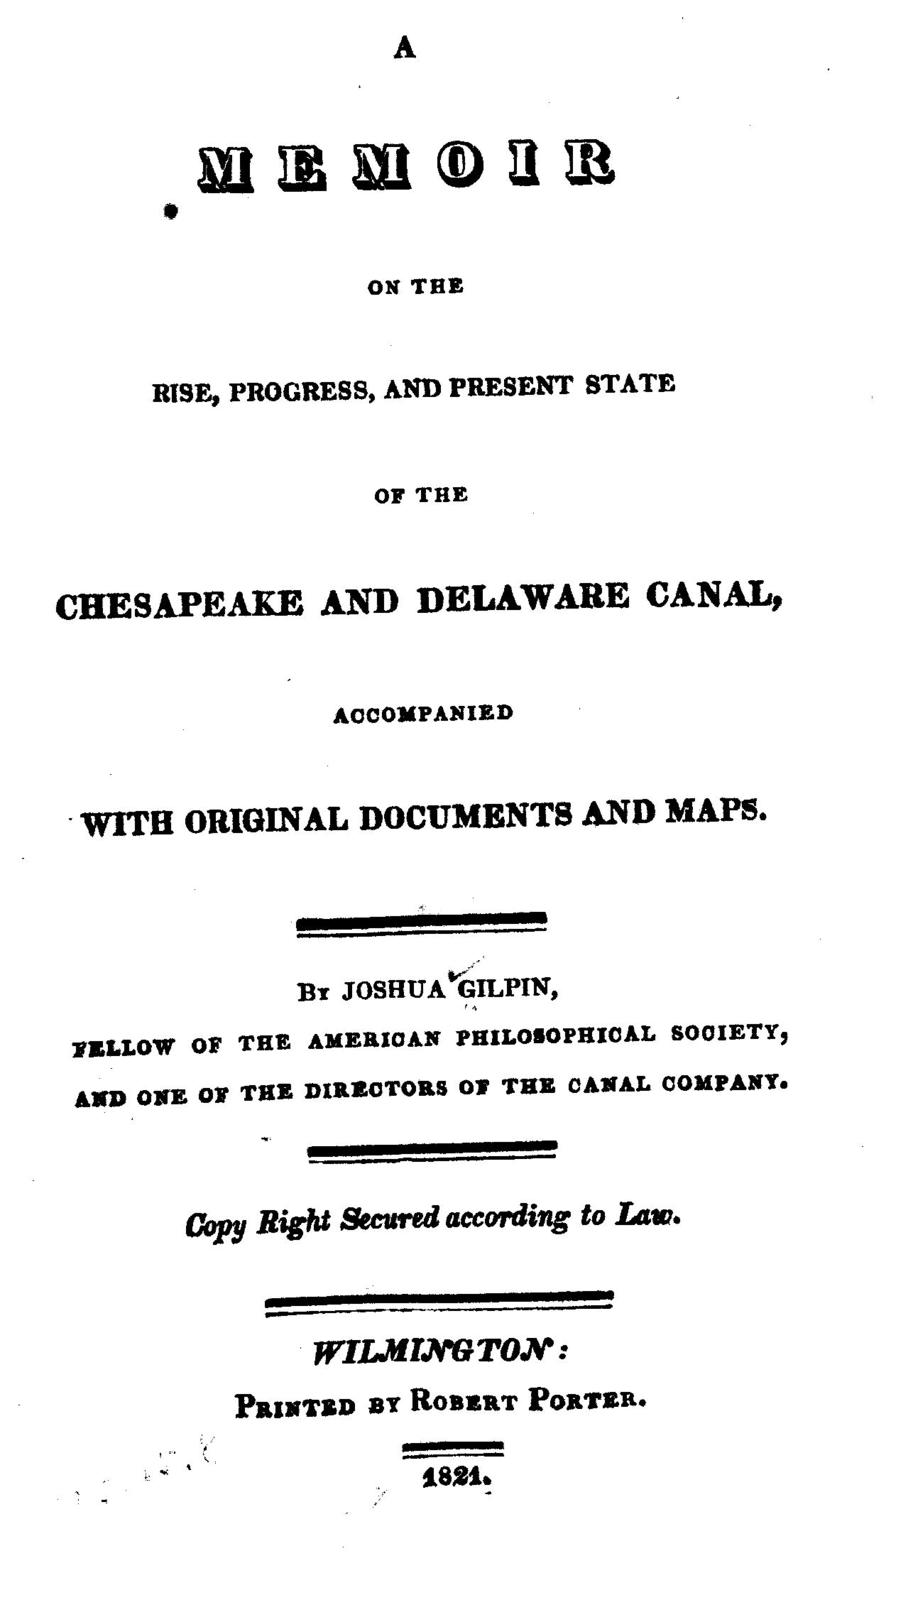 A memoir on the rise, progress, and present state of the Chesapeake and Delaware canal, accompanied with original documents and maps.